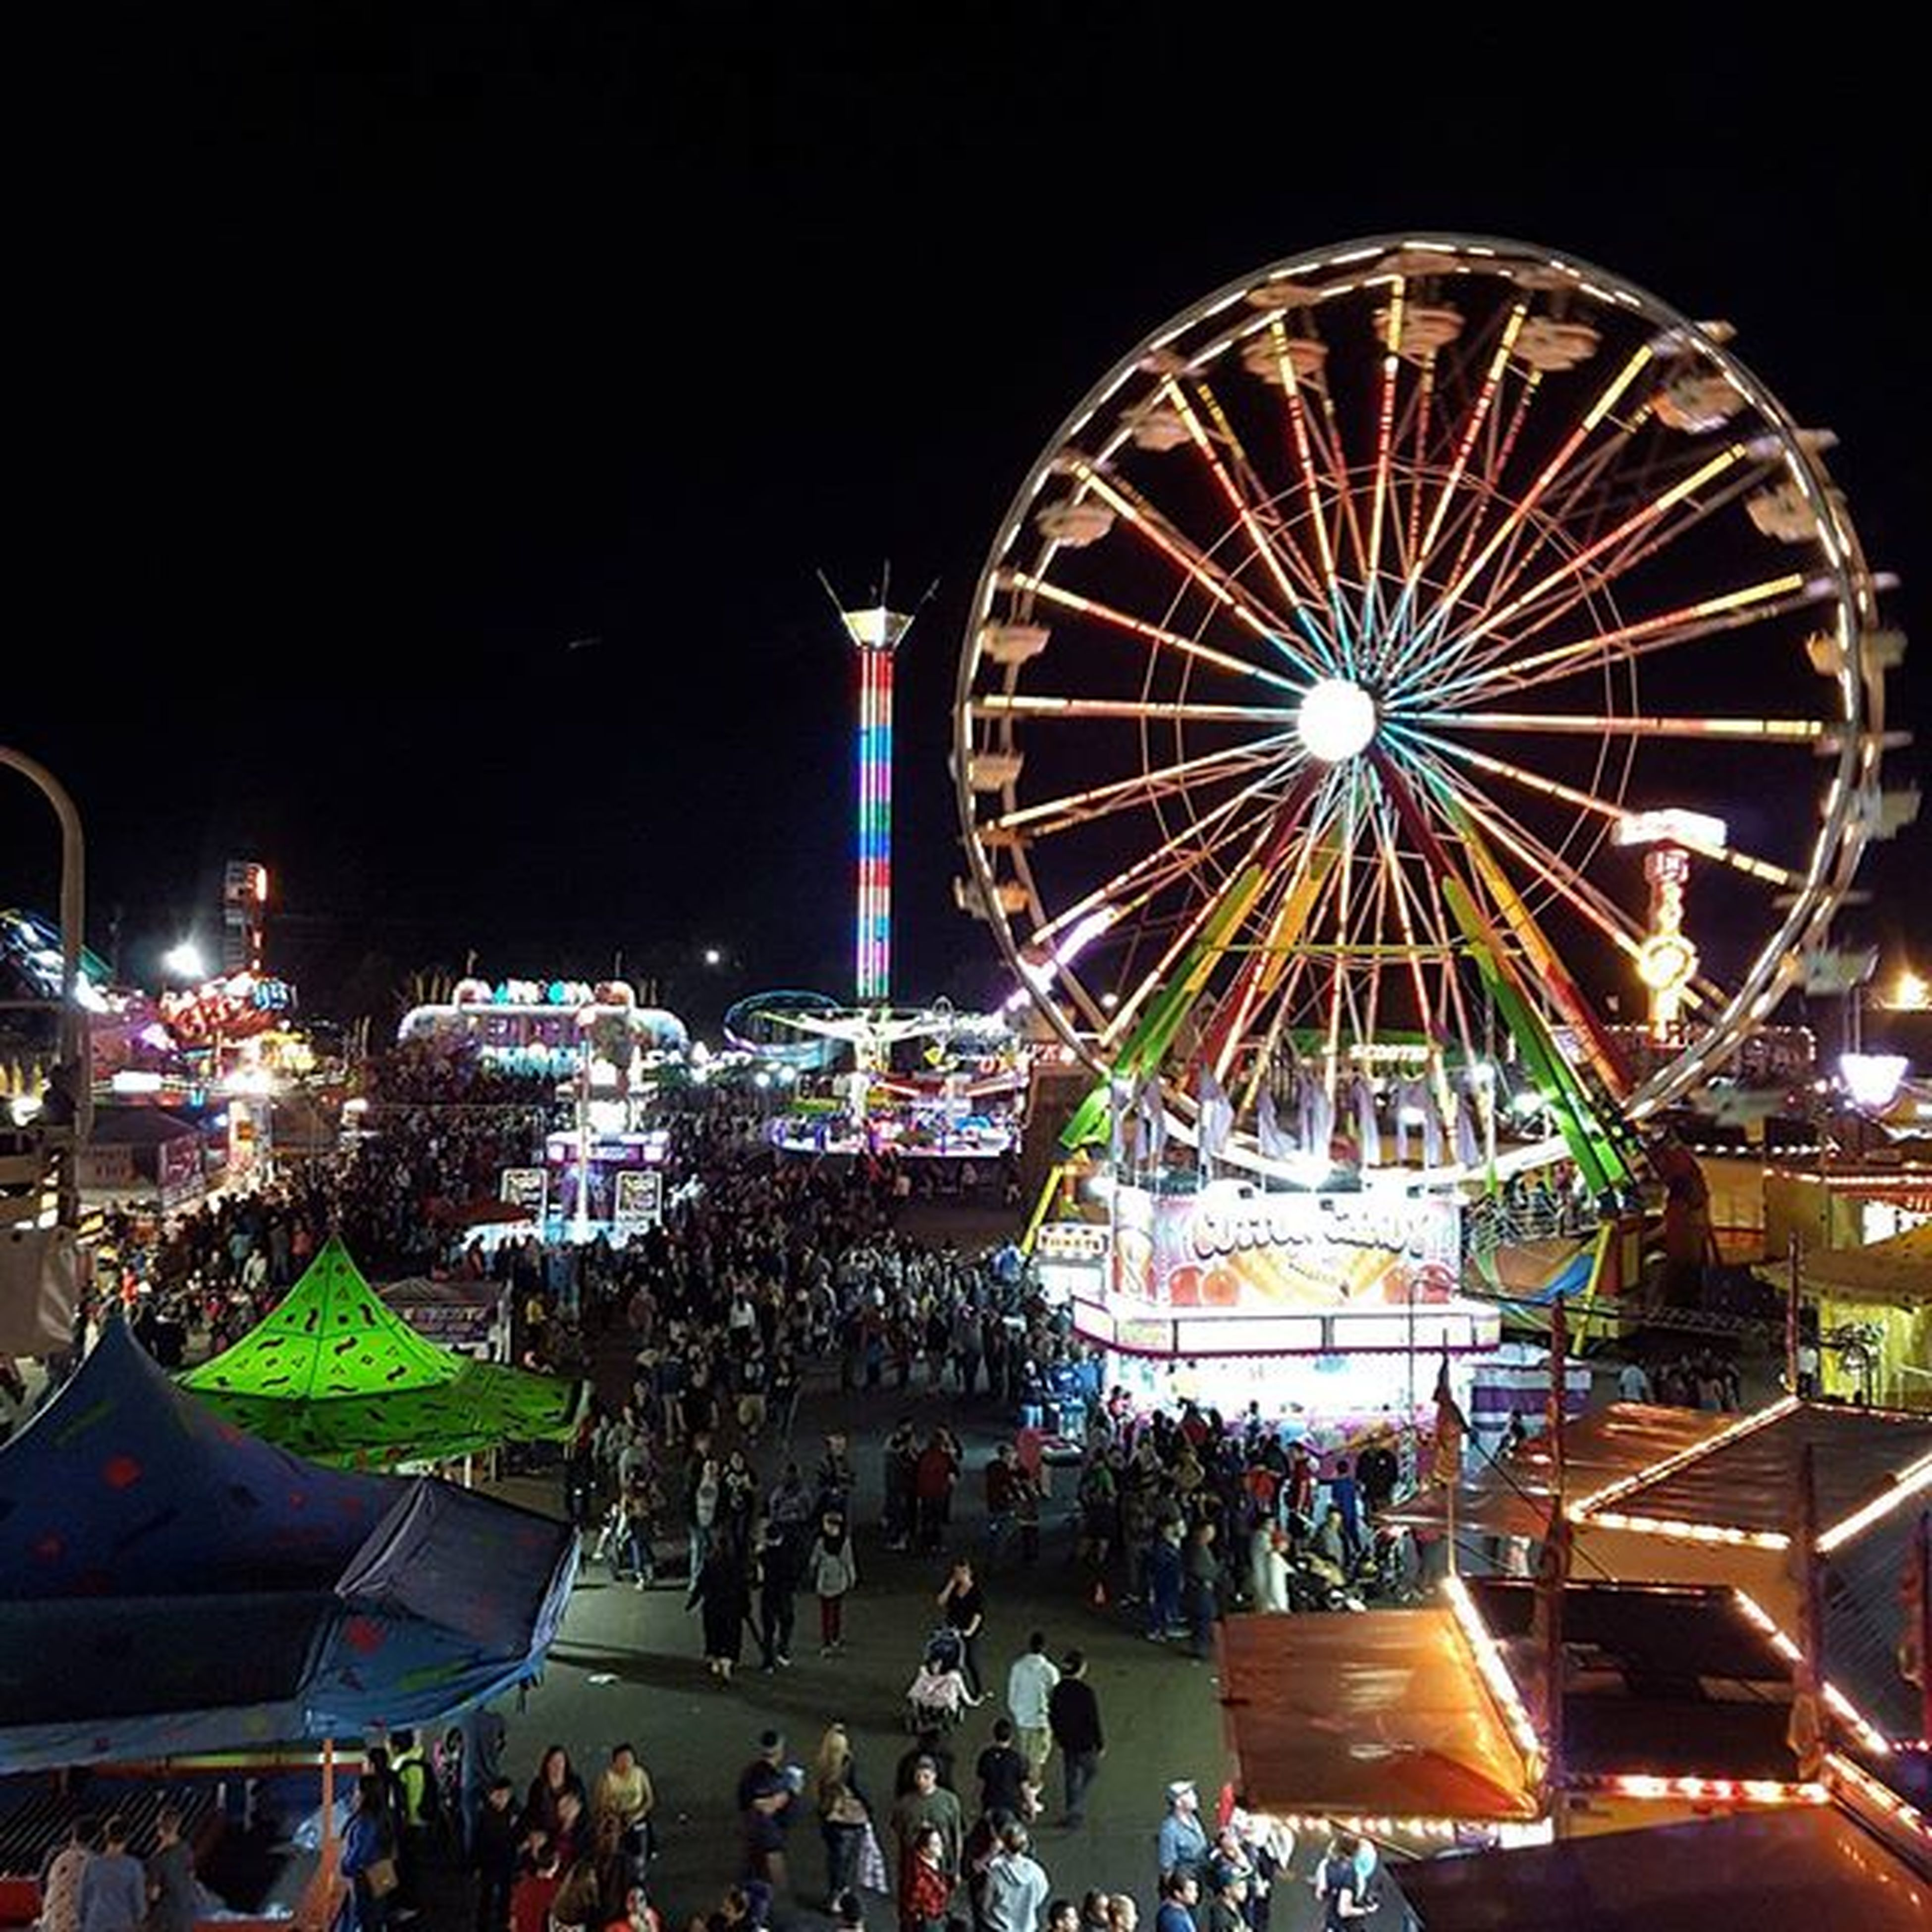 illuminated, night, arts culture and entertainment, amusement park, amusement park ride, ferris wheel, large group of people, lighting equipment, sky, fun, enjoyment, leisure activity, built structure, celebration, architecture, outdoors, multi colored, incidental people, clear sky